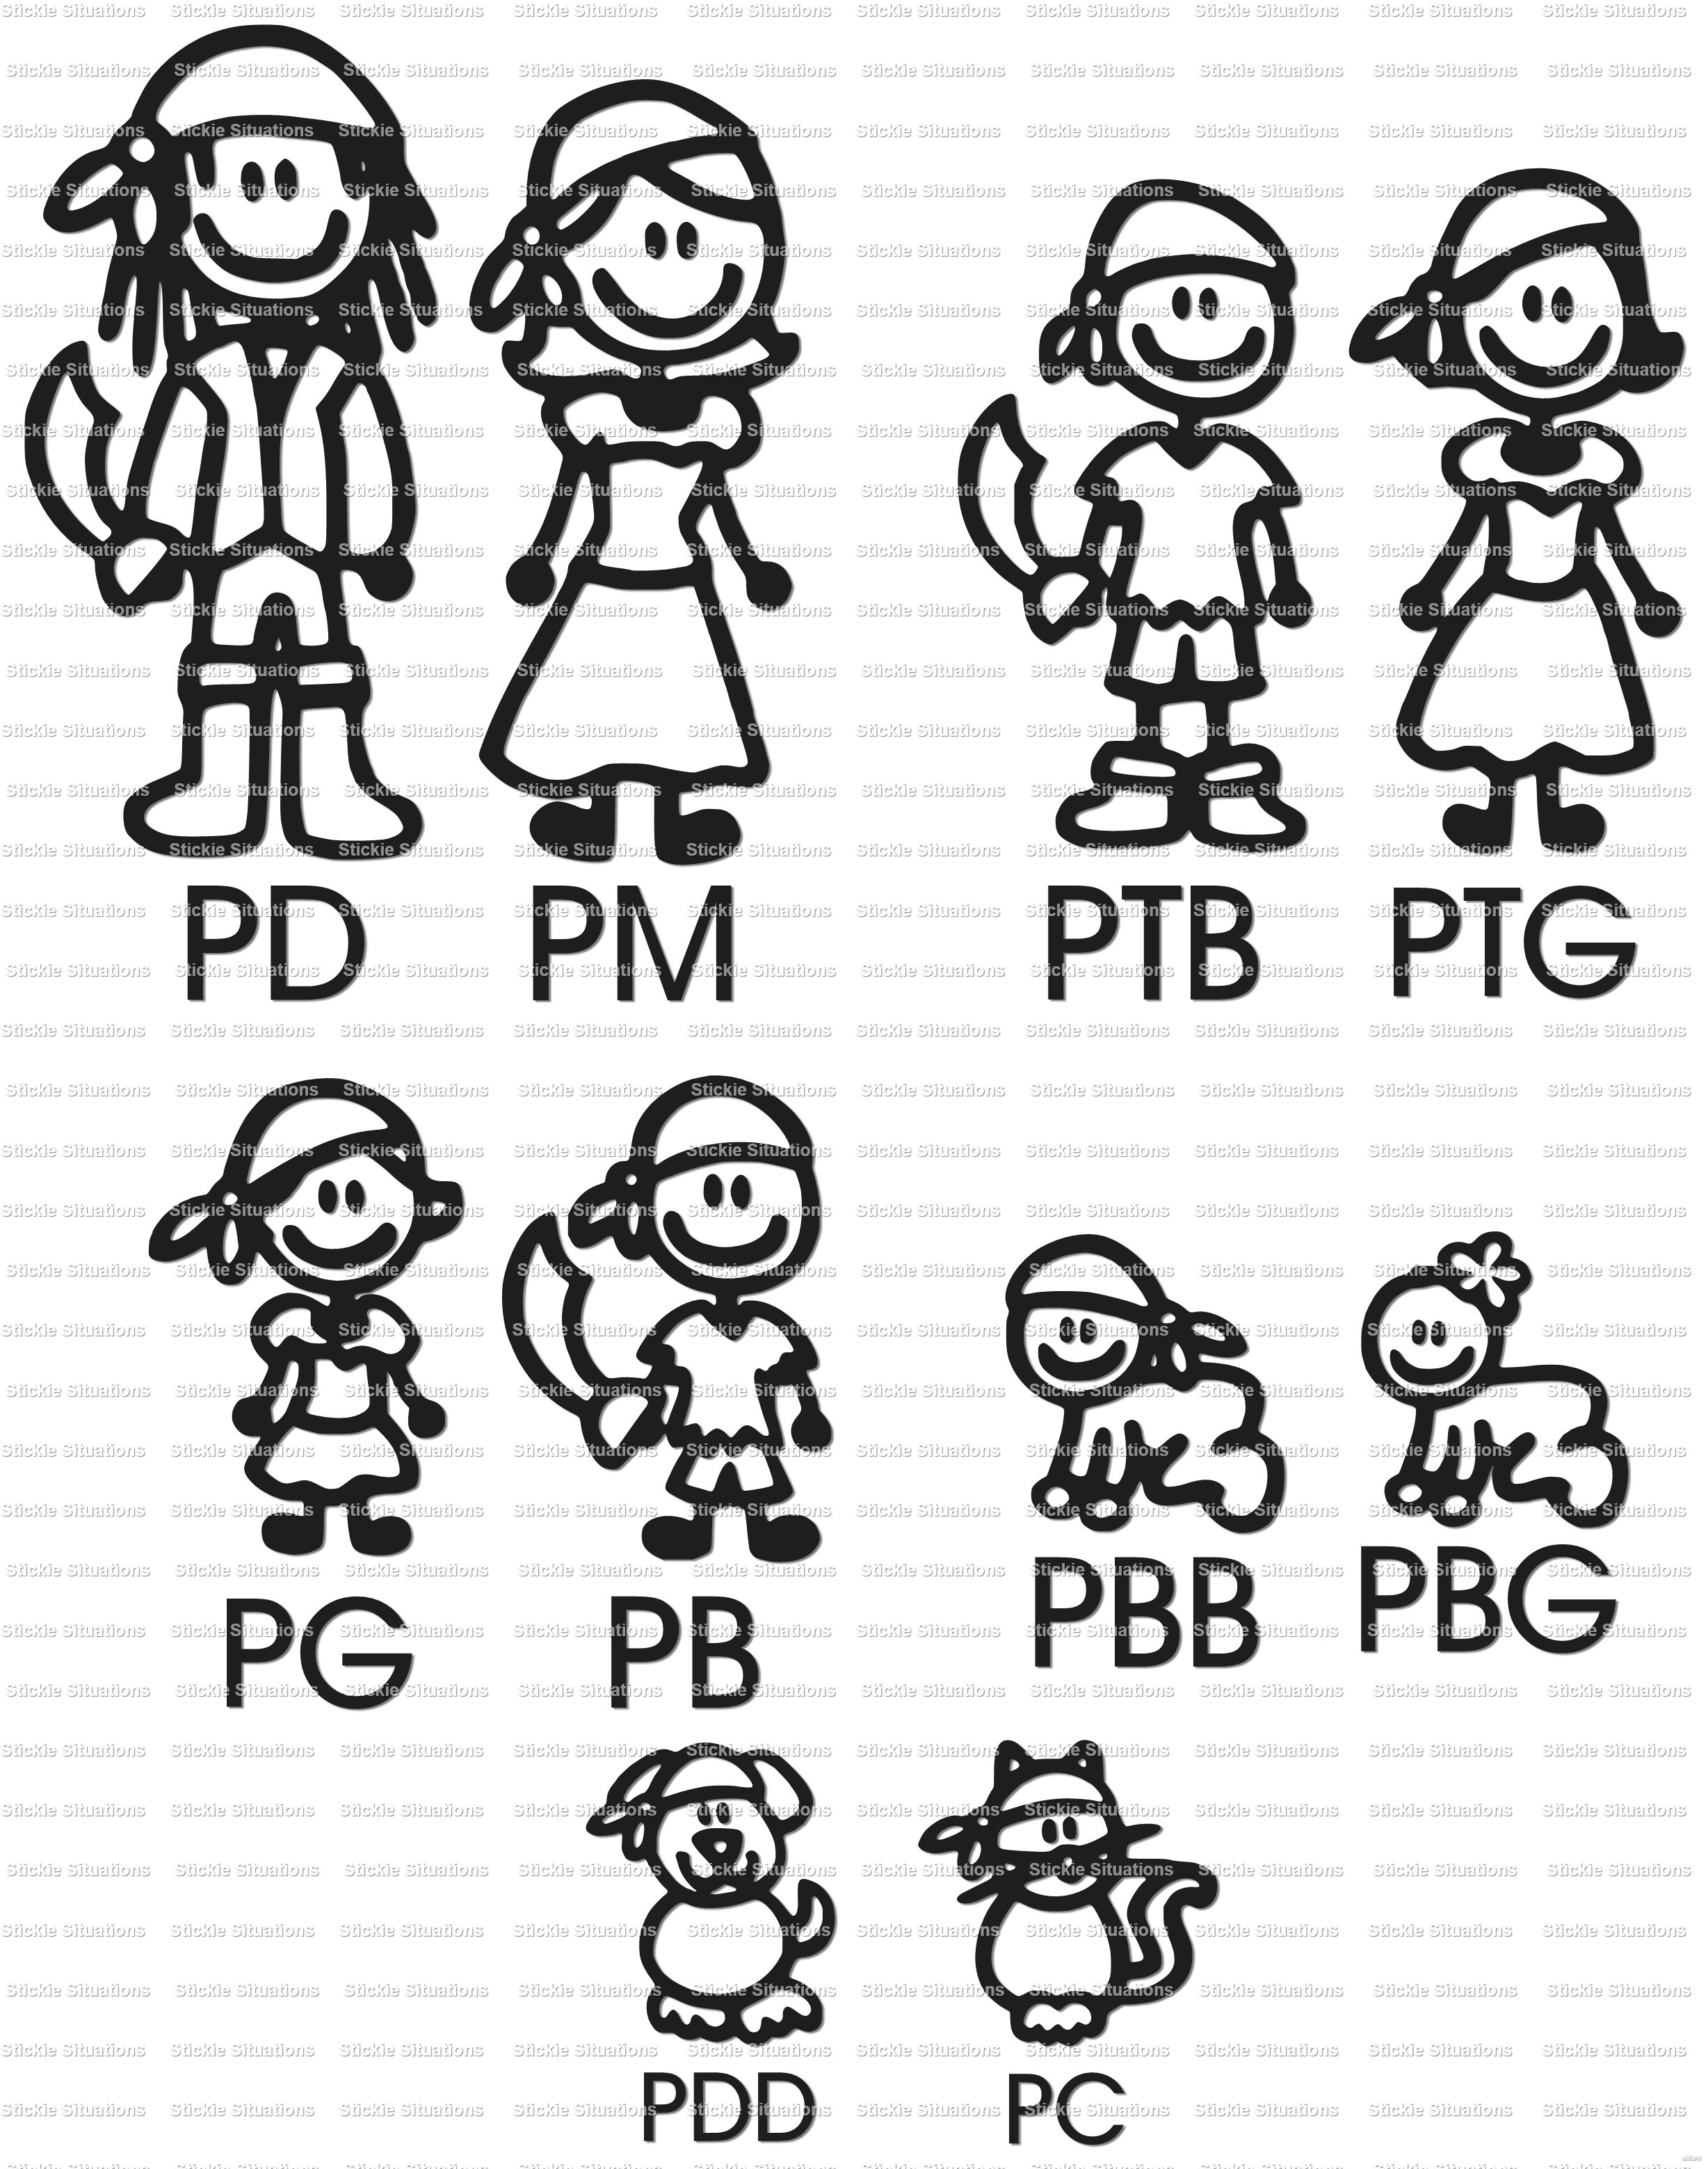 Car sticker design family - Pirate_20family_20characters_small